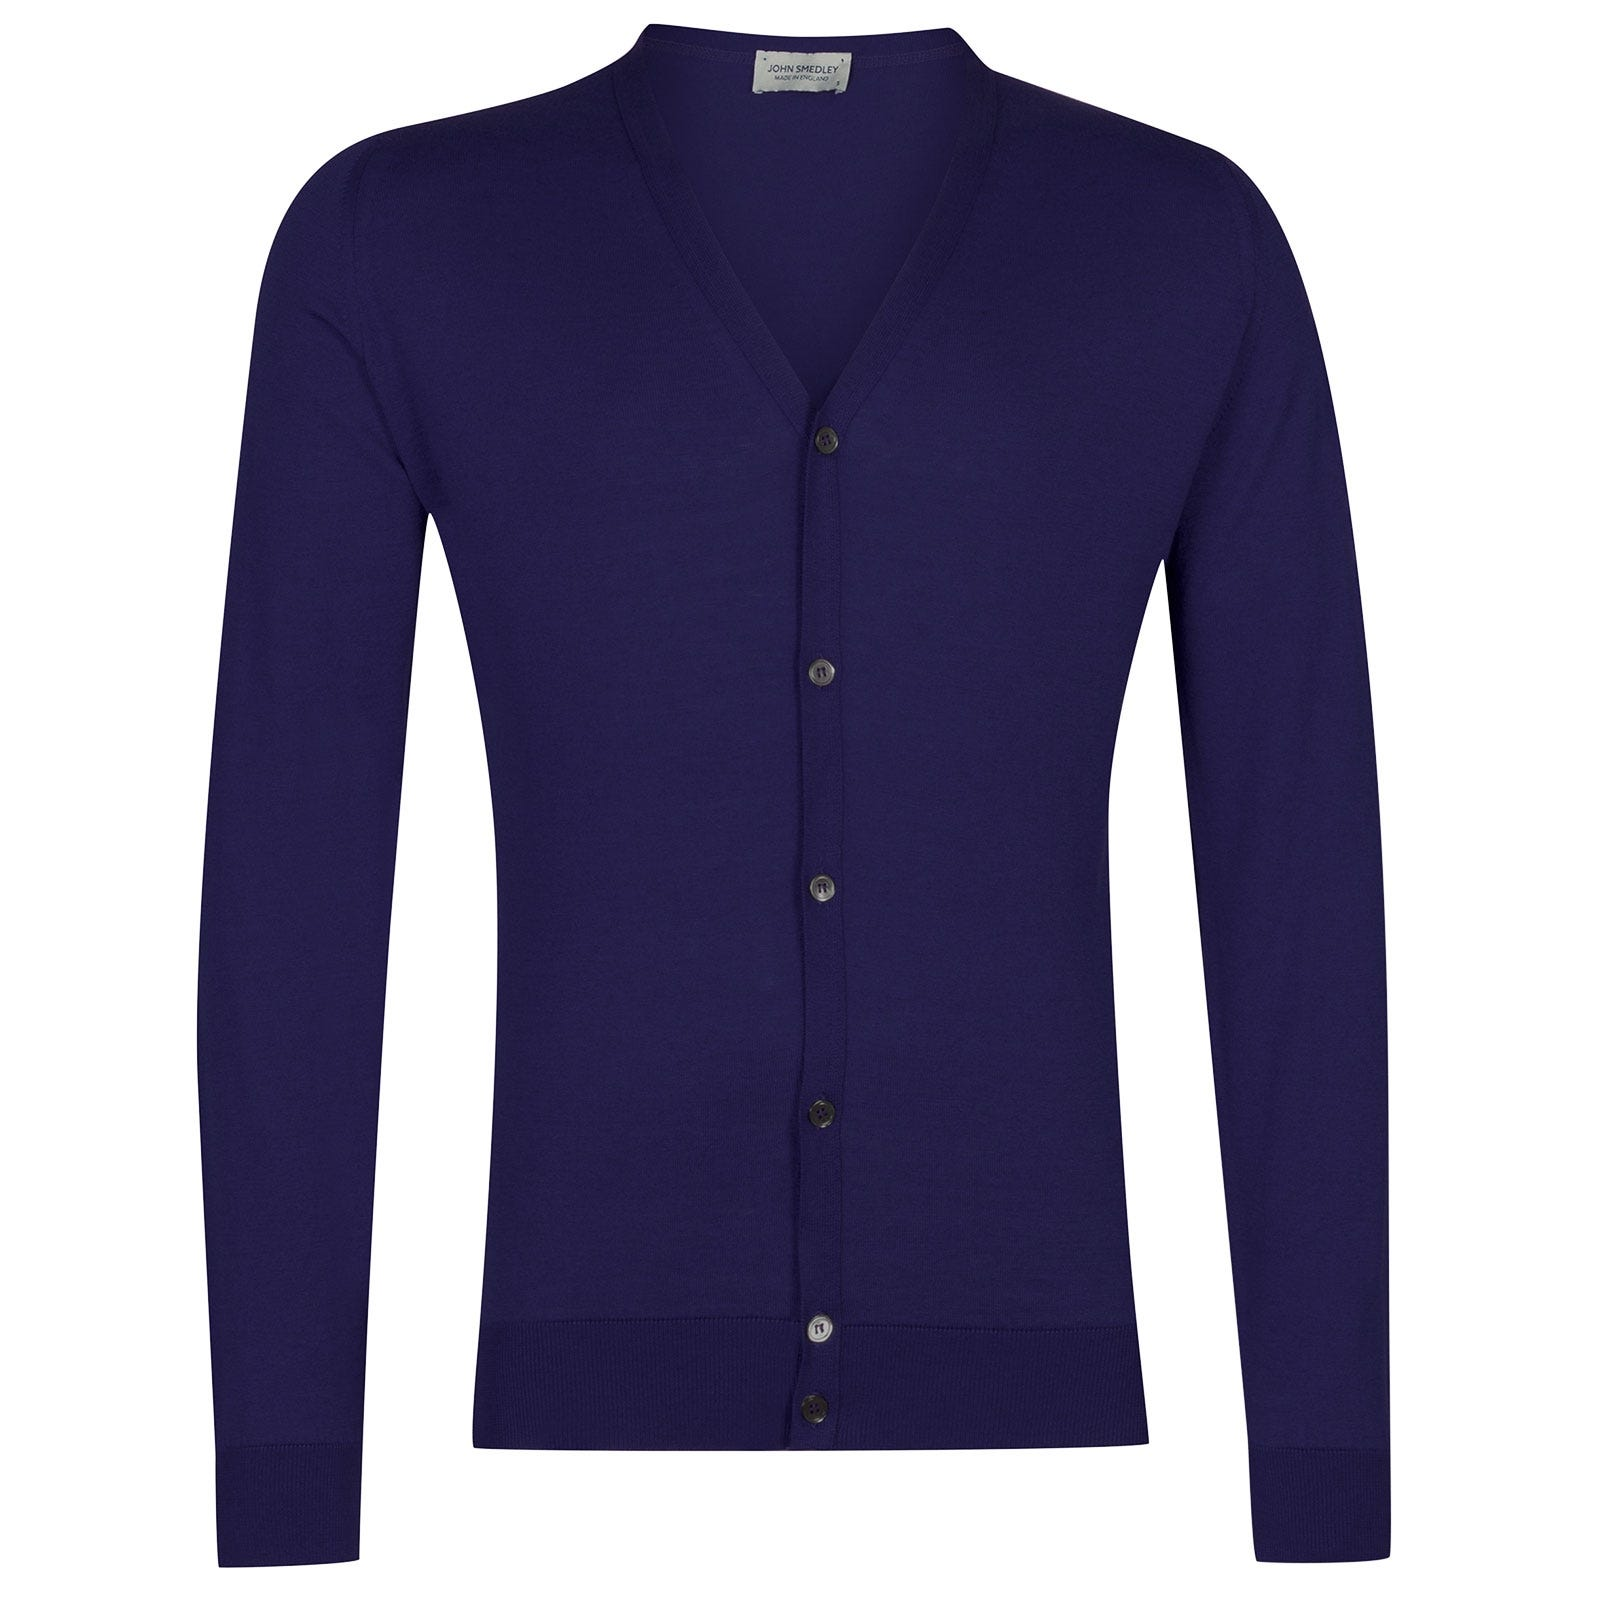 John Smedley Whitchurch Sea Island Cotton Cardigan in Serge Blue-S